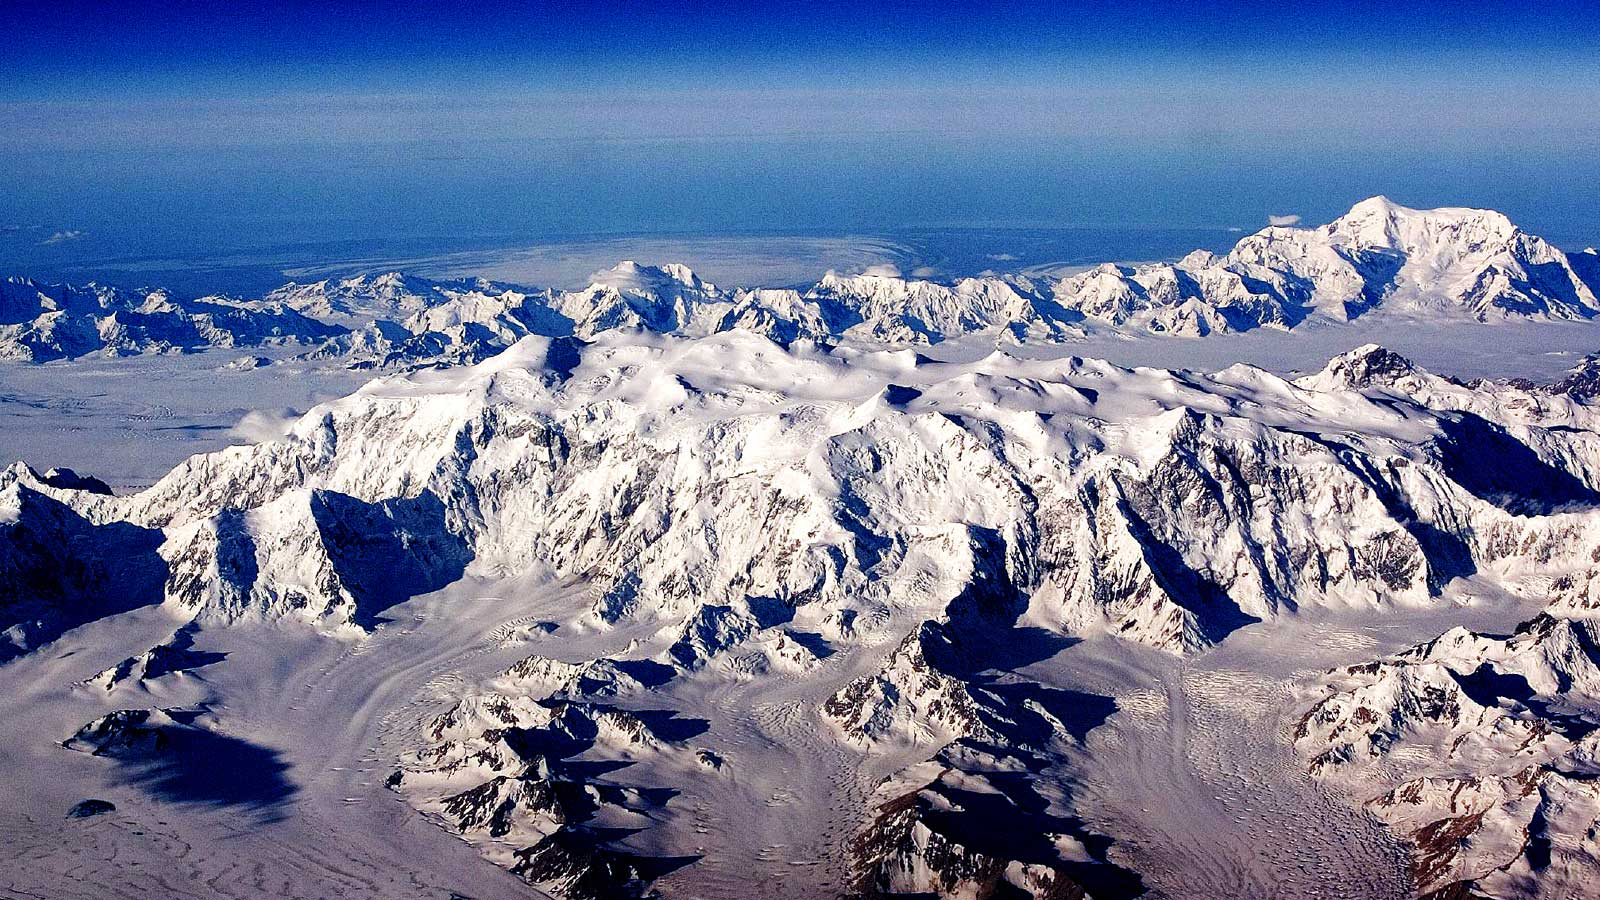 St. Elias mountain